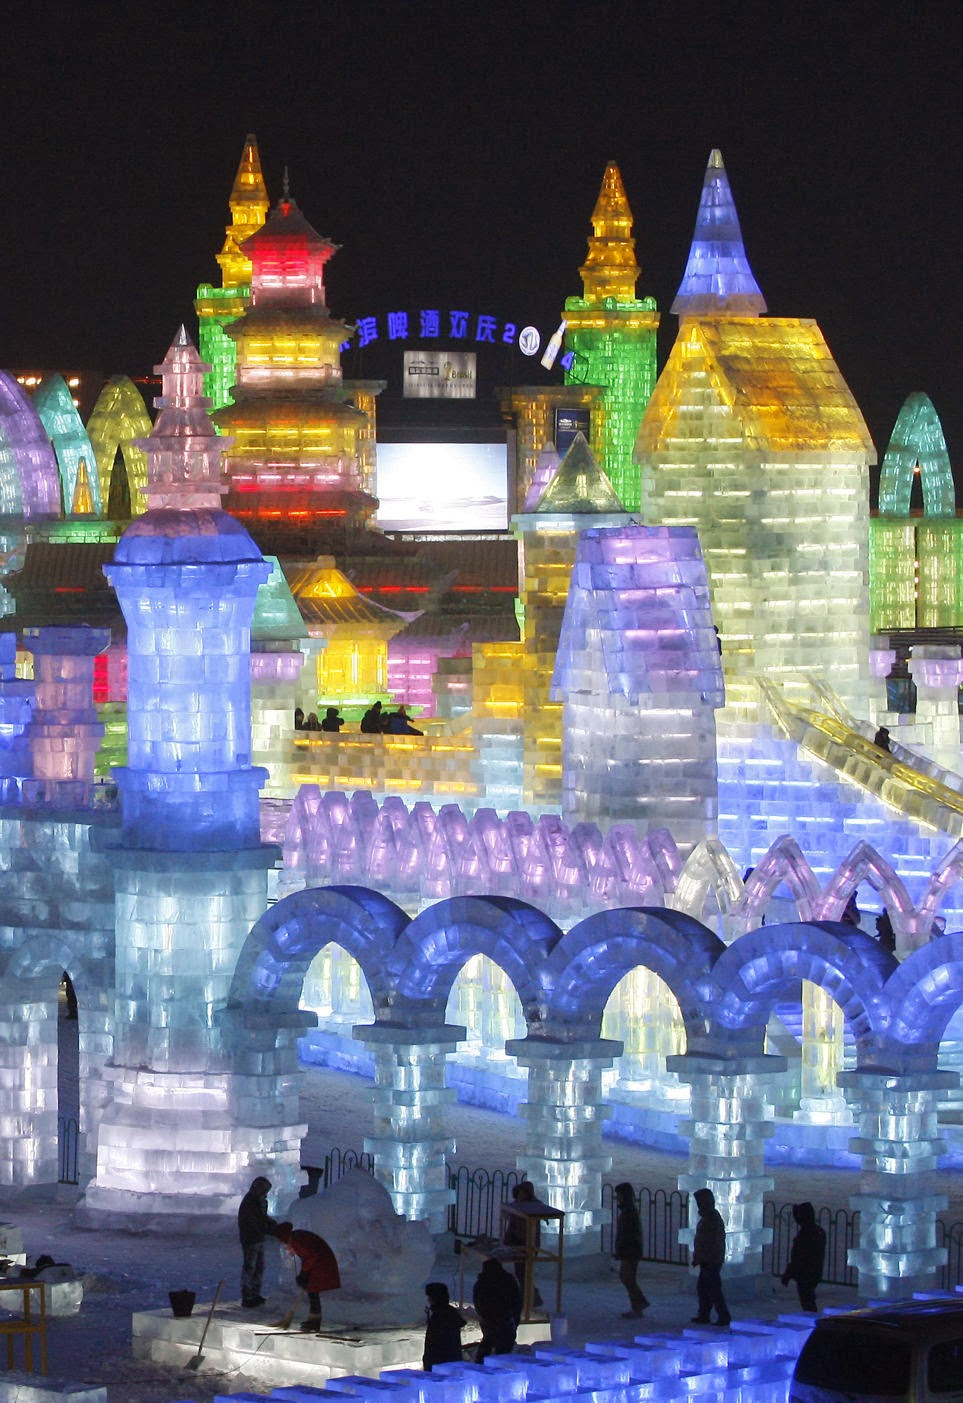 Harbin China ice sculptures 2013 randommusings.filminspector.com